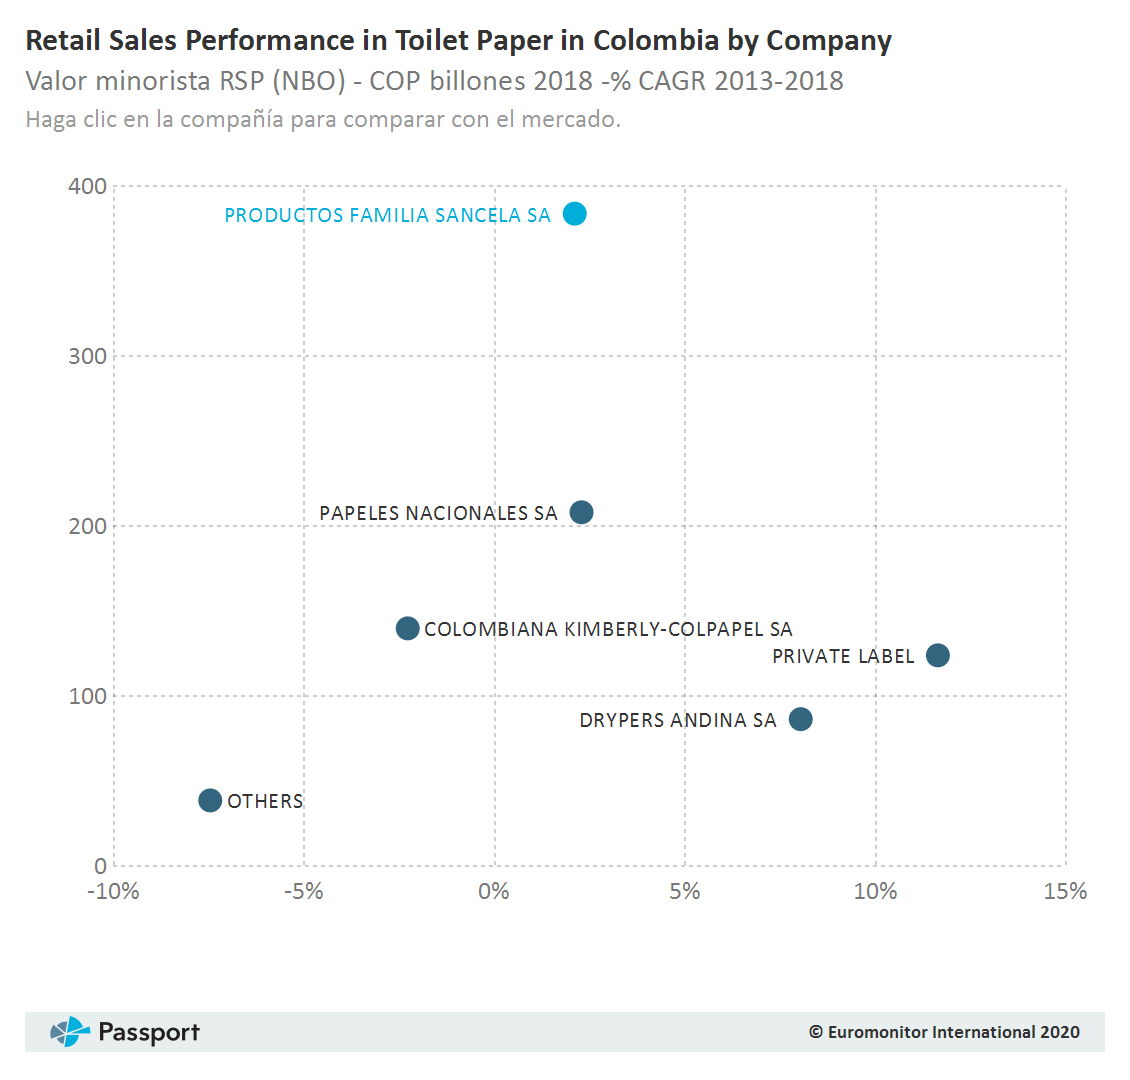 Retail_Sales_Performance_in_Toilet_Paper_in_Colombia_by_Company